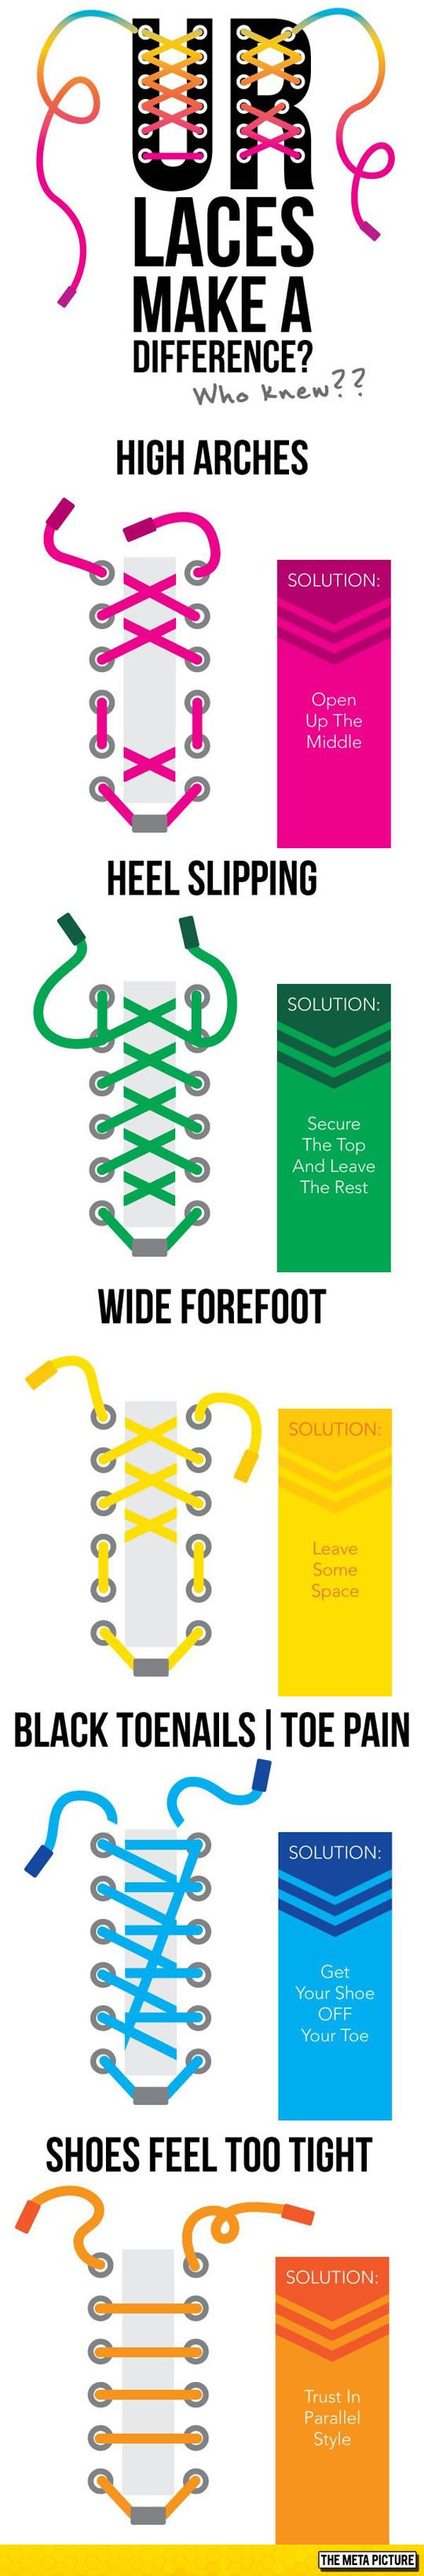 How To Lace Shoes For Proper Fit Fashion Pinterest Life hacks